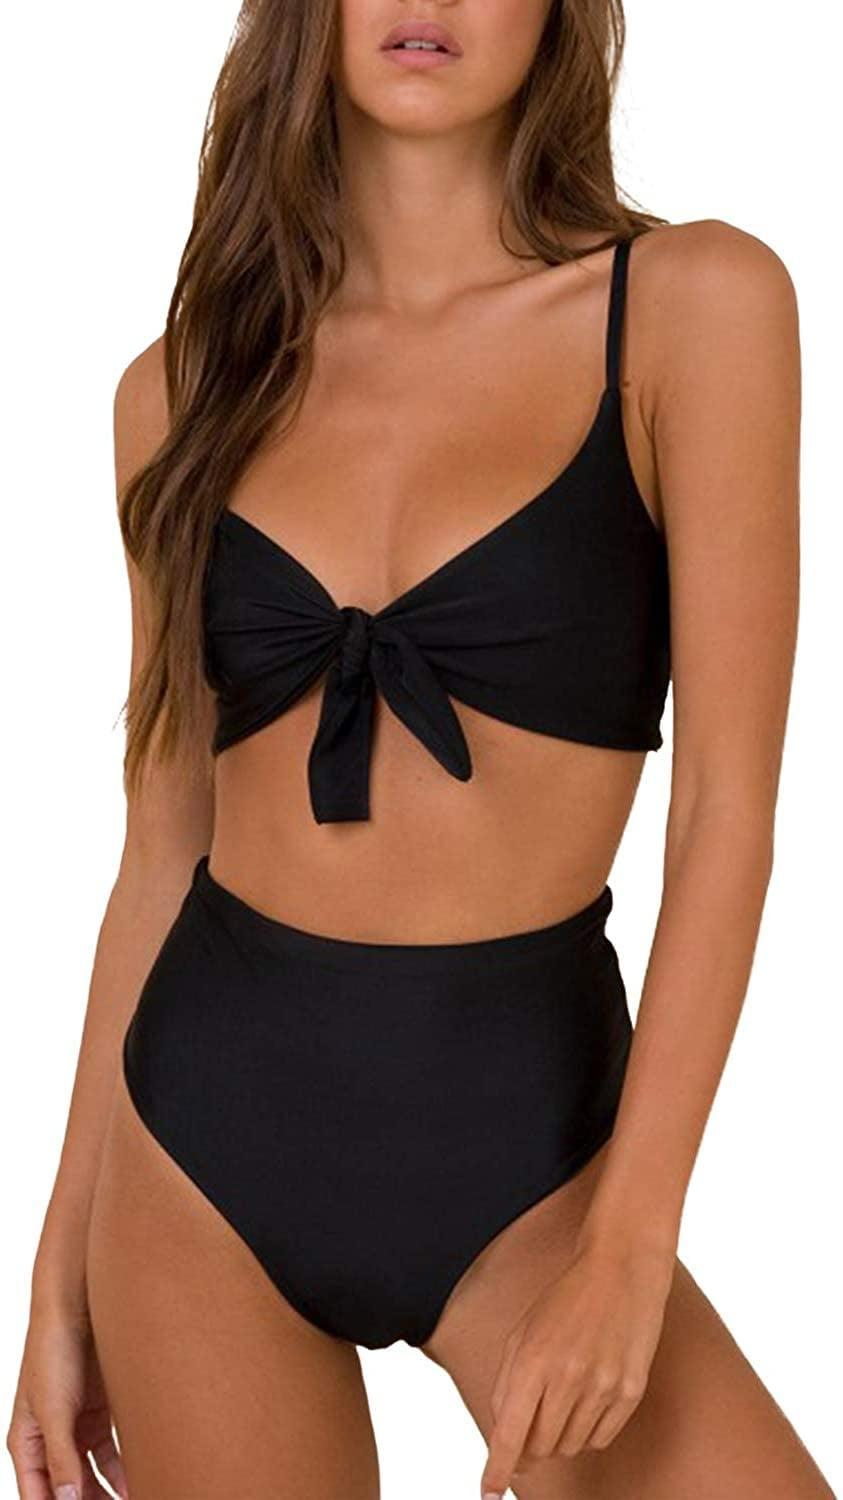 <p>This <span>Blooming Jelly High Waisted Bikini Set</span> ($14 - 30) is playful and fun.</p>